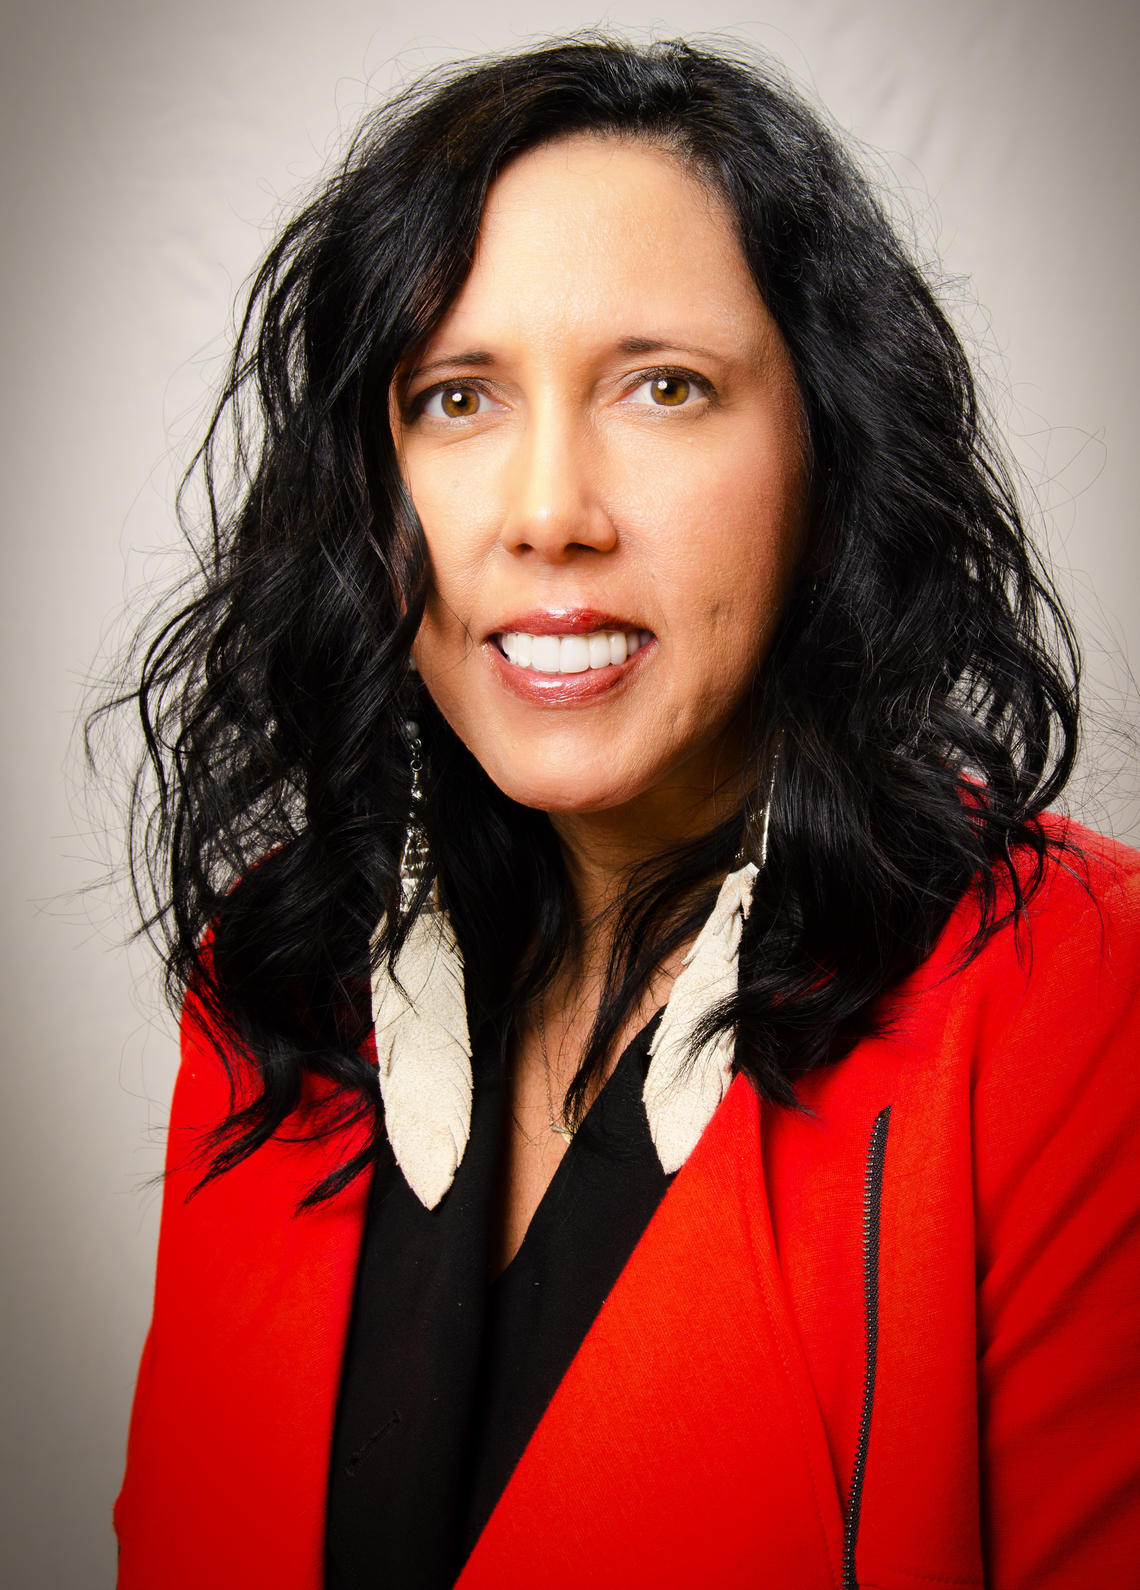 Carrie Bourassa, scientific director of the Institute of Indigenous Peoples' Health.